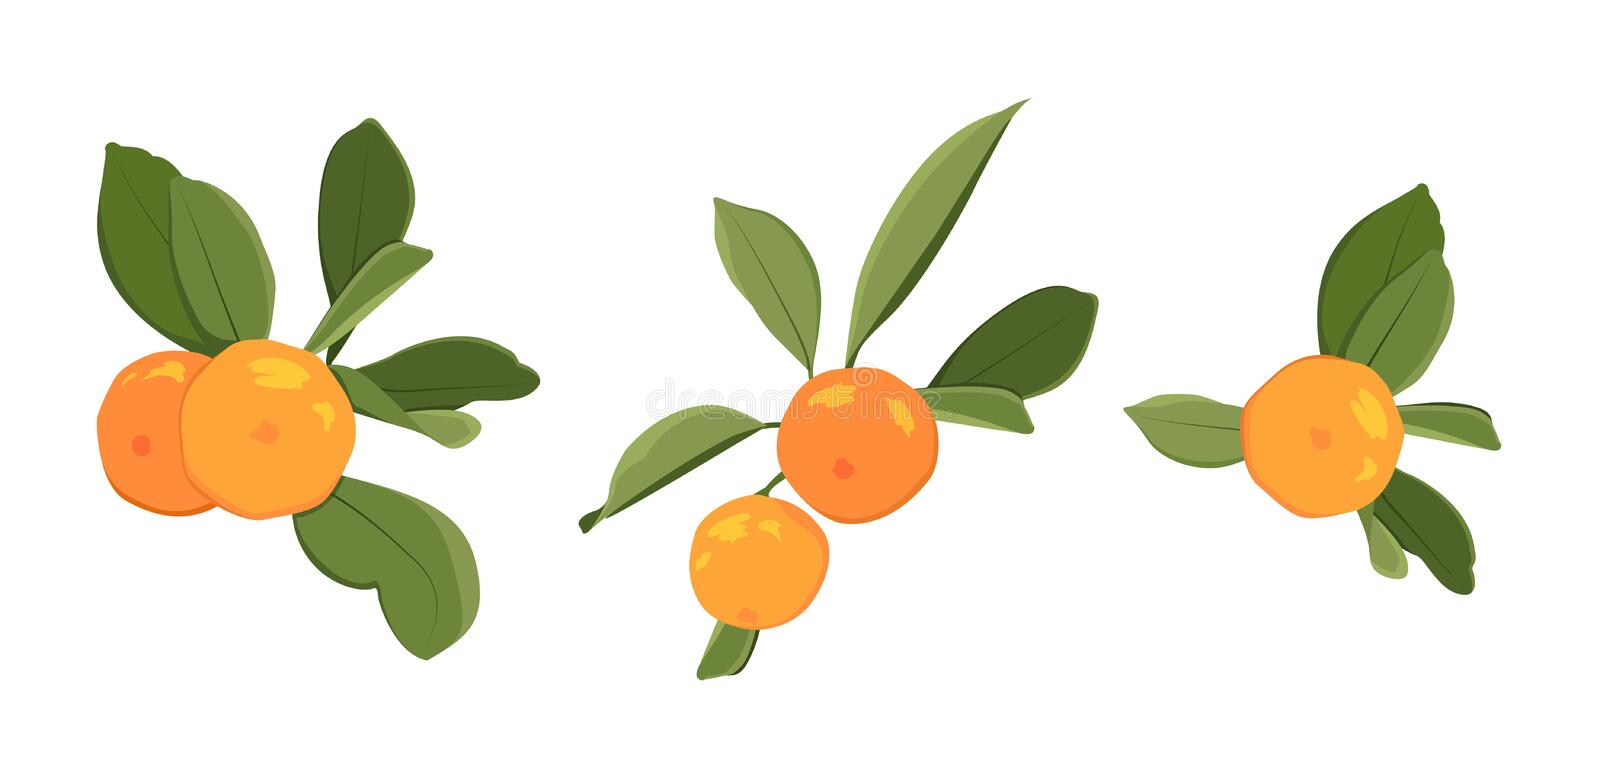 Clementine tangerine mandarin ripe orange citrus organic juicy fruit on branch green leaves. Vector design element. royalty free illustration